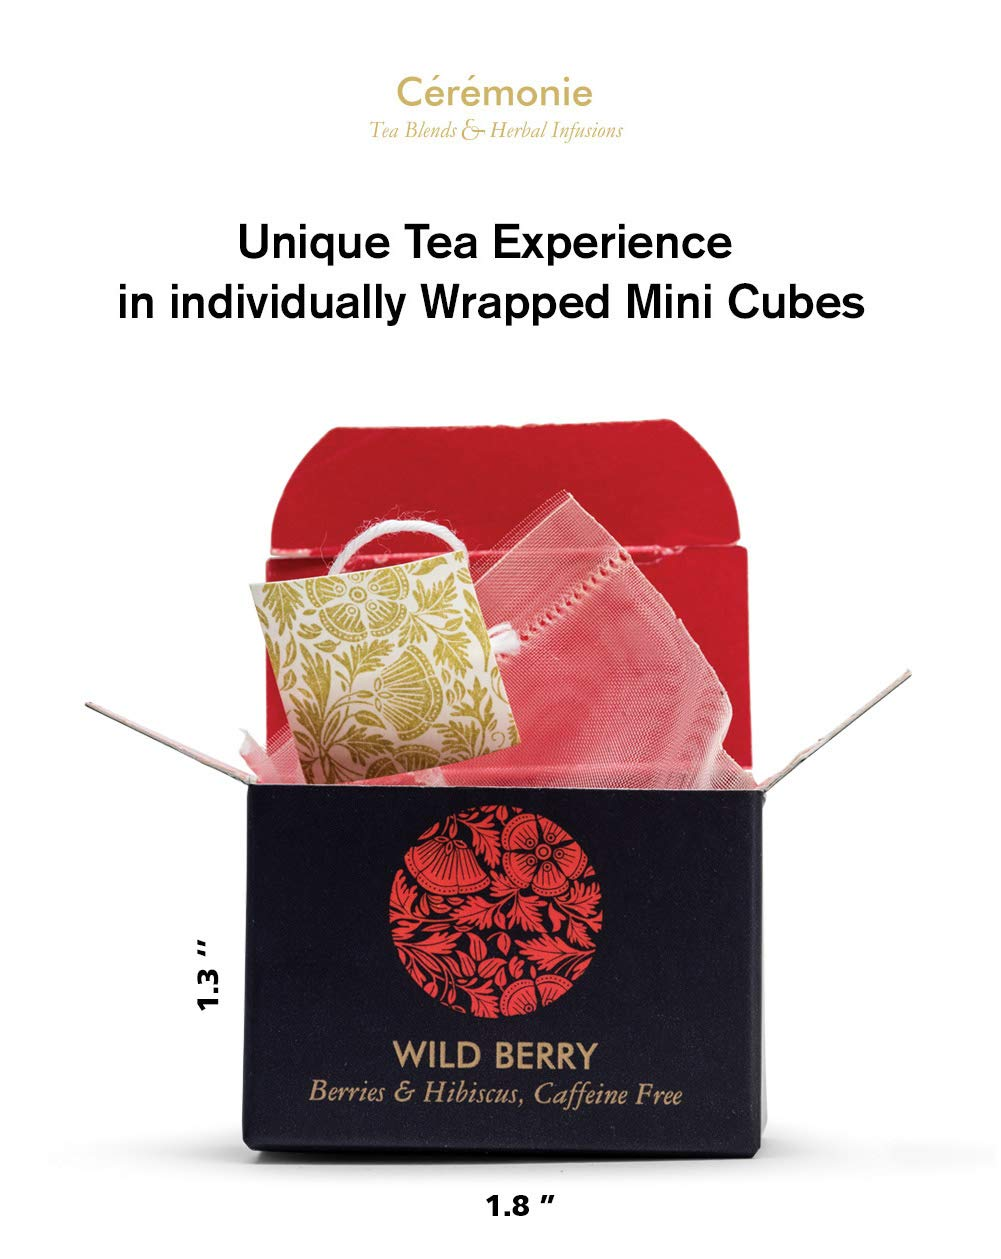 Ceremonie Tea, Premium Tea Voyage Variety Sampler Collection. 32 Individually Wrapped Mesh Bags - 13 Rich Flavors of Green, Black and Herbal Teas